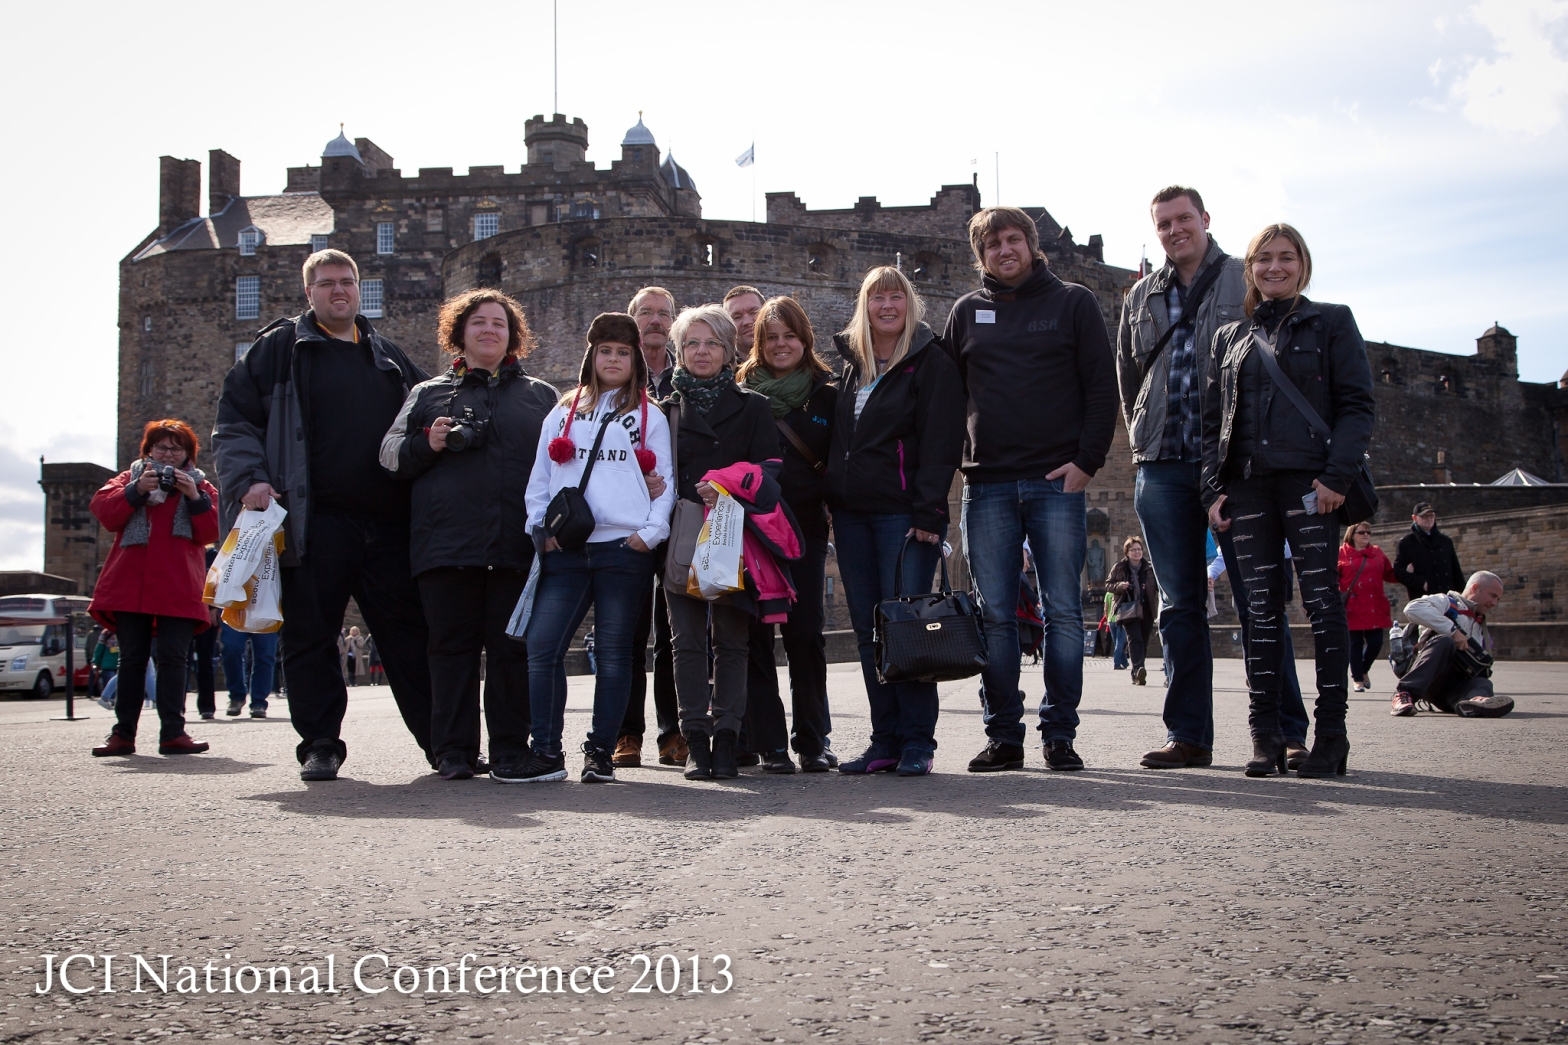 Edinburgh Castle Esplanade